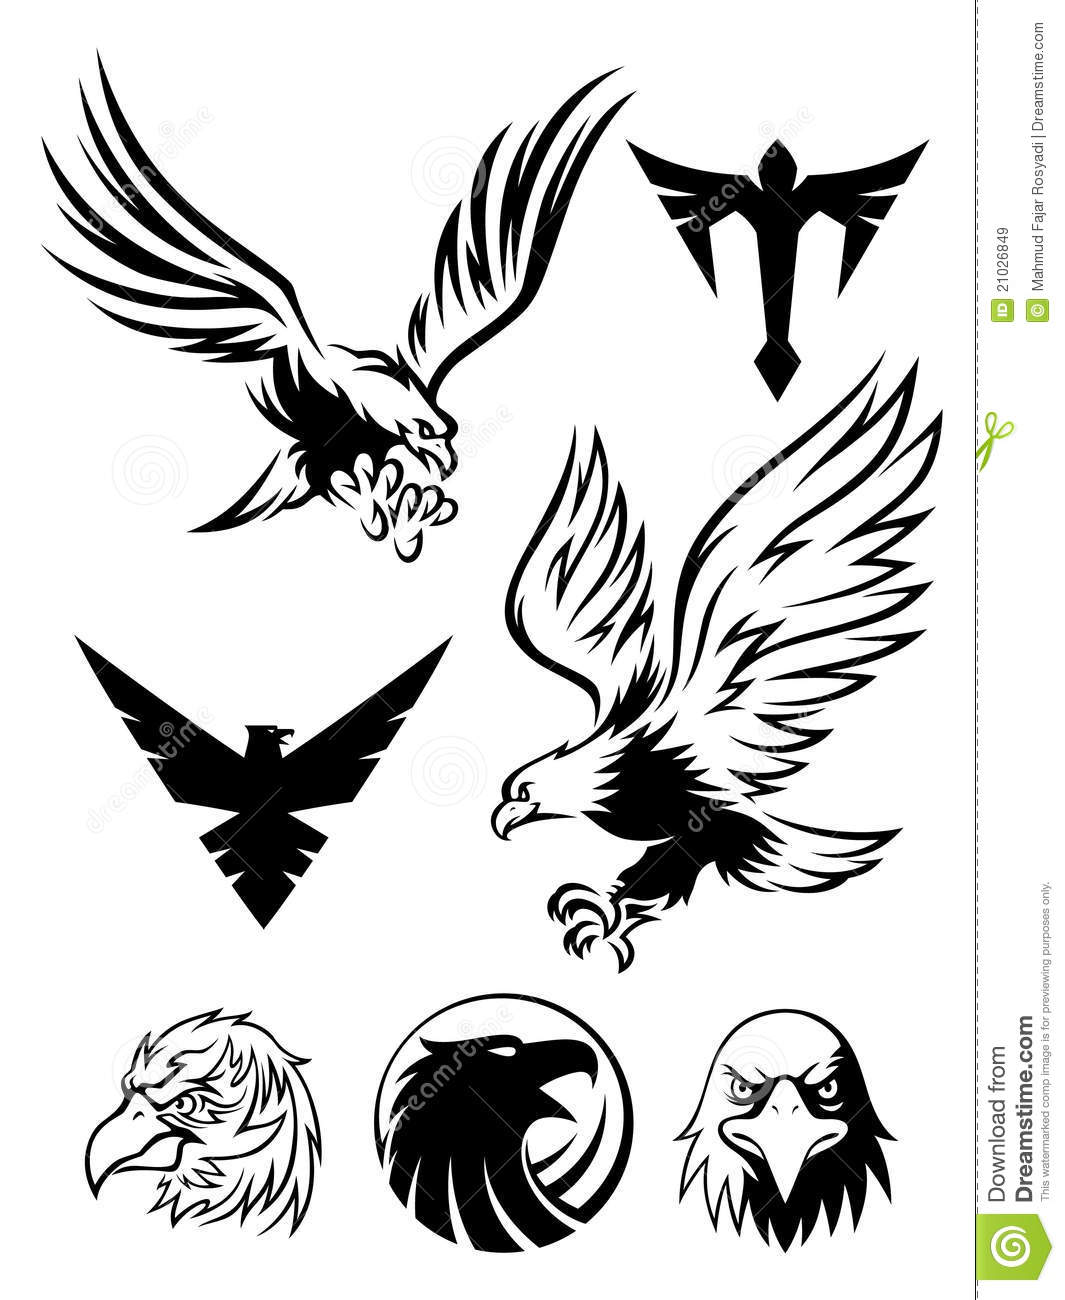 Eagle Symbol Stock Vector Illustration Of Strength